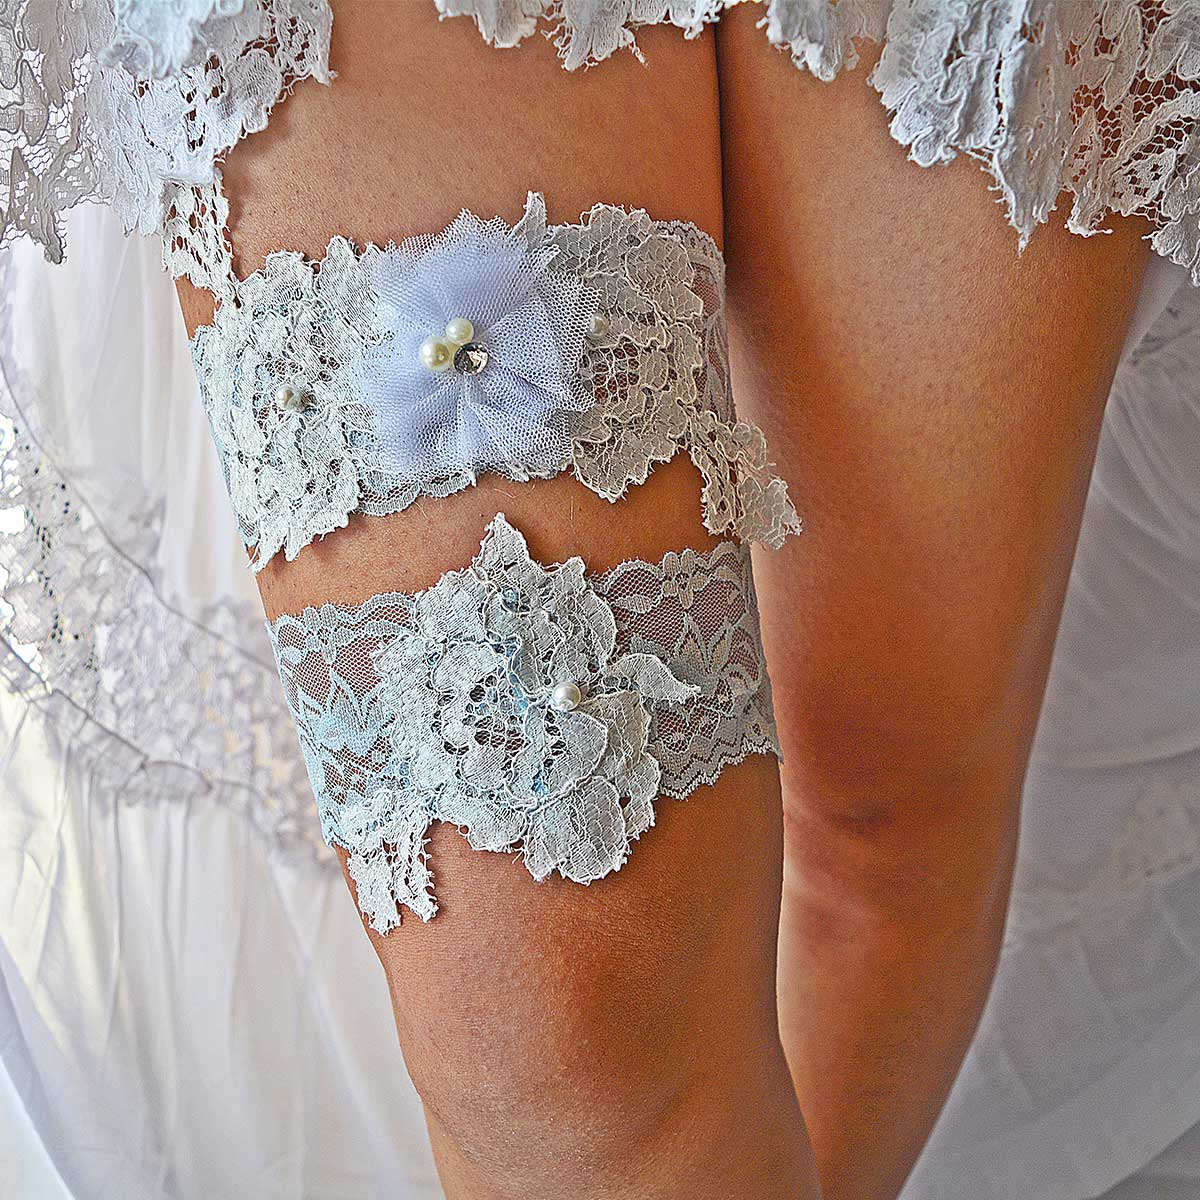 Pale Blue Garter With Off White Applique Lace & White Flower - Wedding Garter - SuzannaM Designs